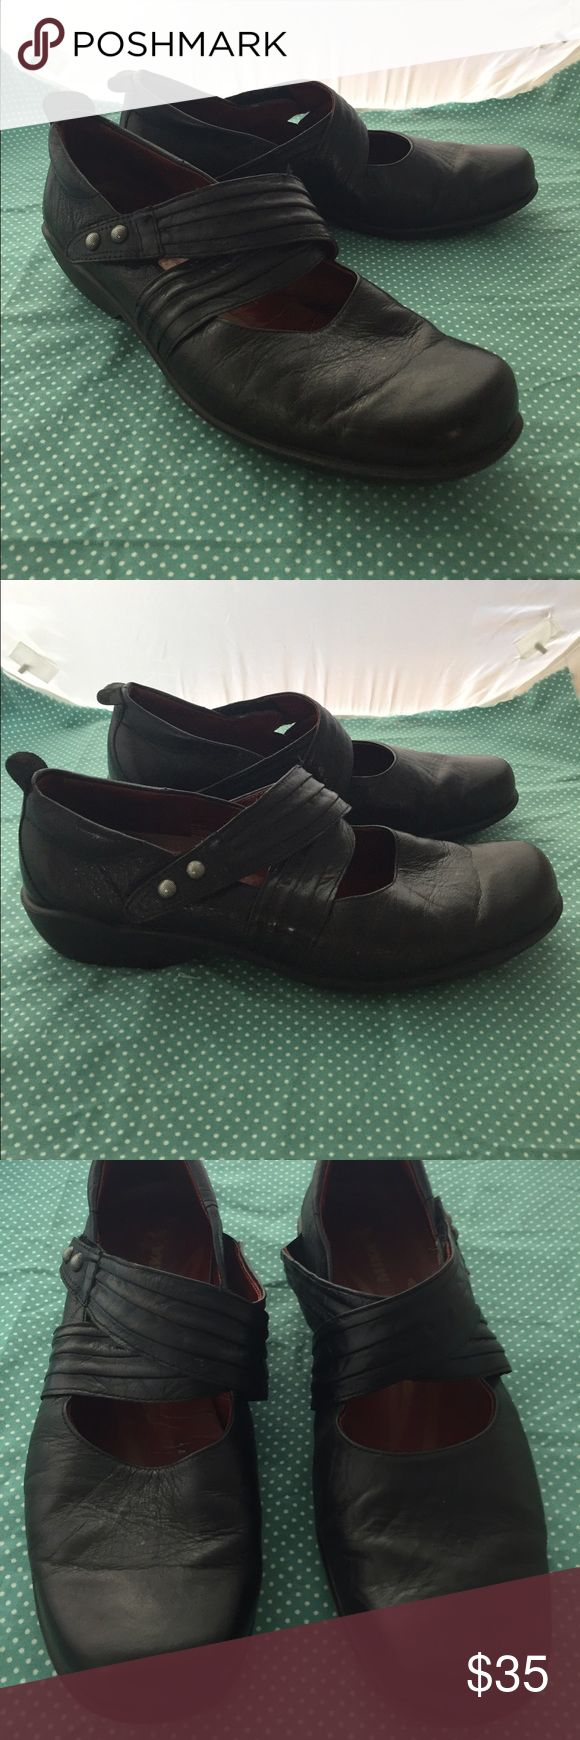 Romika Black Leather Mary Jane Loafer, Size 41 These adorable, European-styledshoes are comfortable and stylish! With adjustable velcro strap, rubber sole. Show some wear as shown in pictures. Solid used condition. Romika Shoes Flats & Loafers